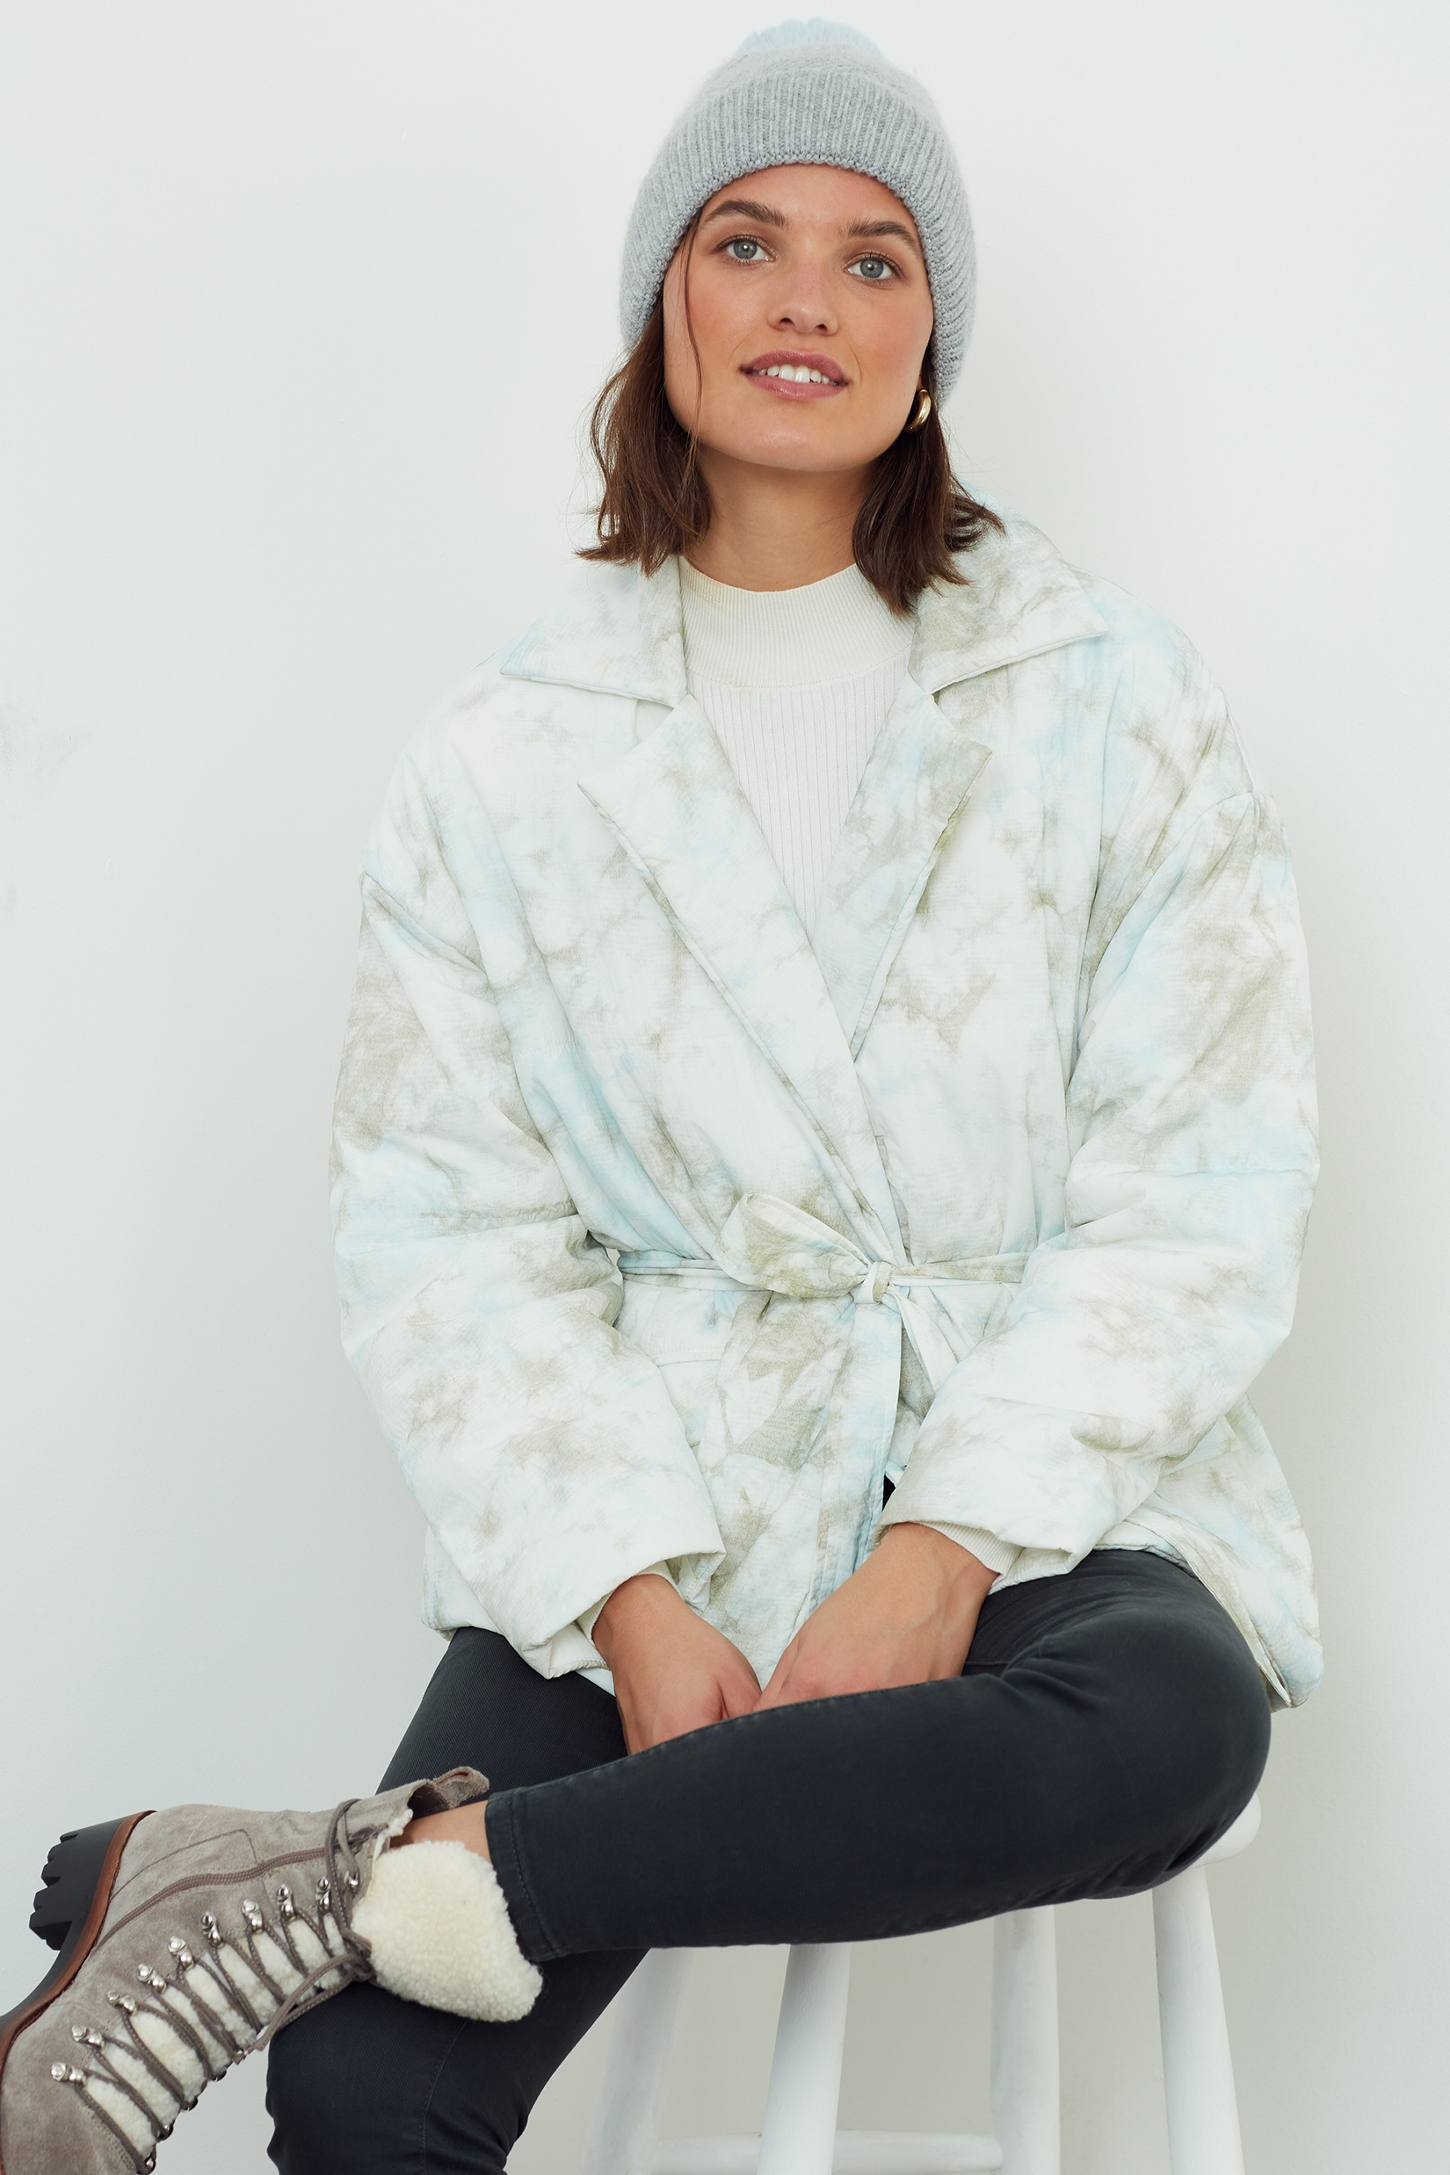 Anthropologie's Offering A Dreamy 30% Sitewide Discount For Black Friday